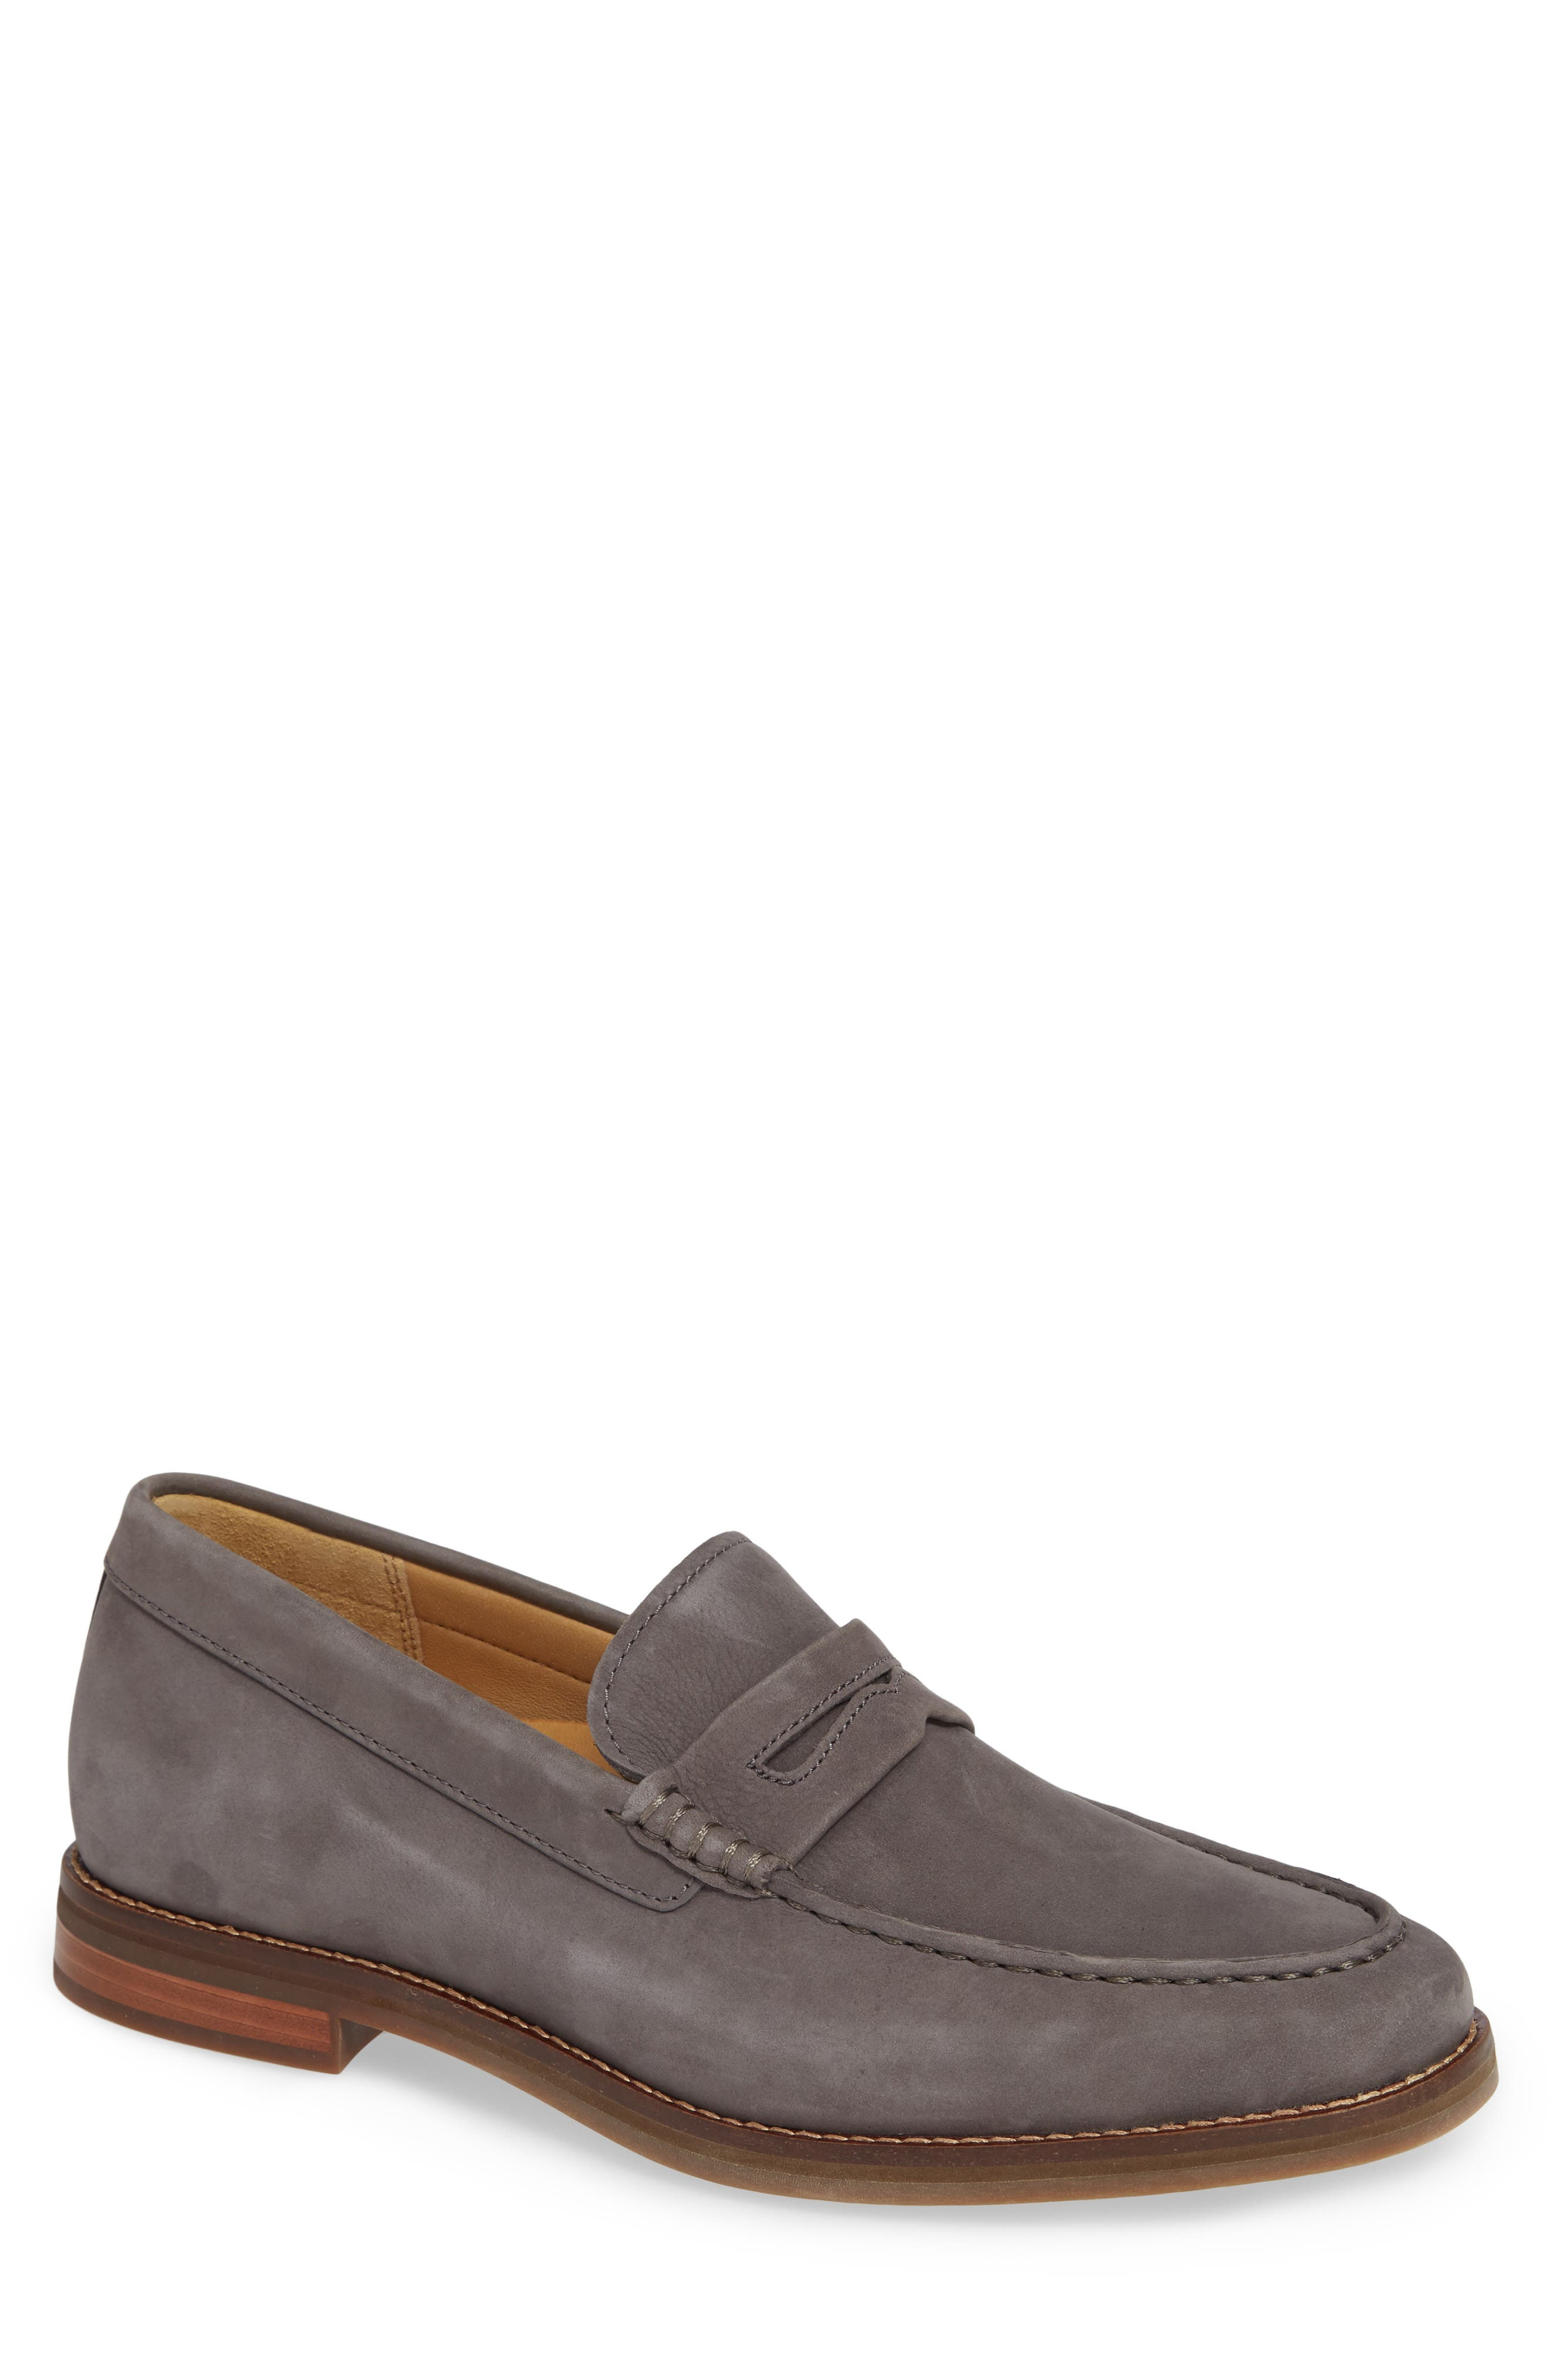 Gold Cup Exeter Penny Loafer,                             Main thumbnail 1, color,                             GREY